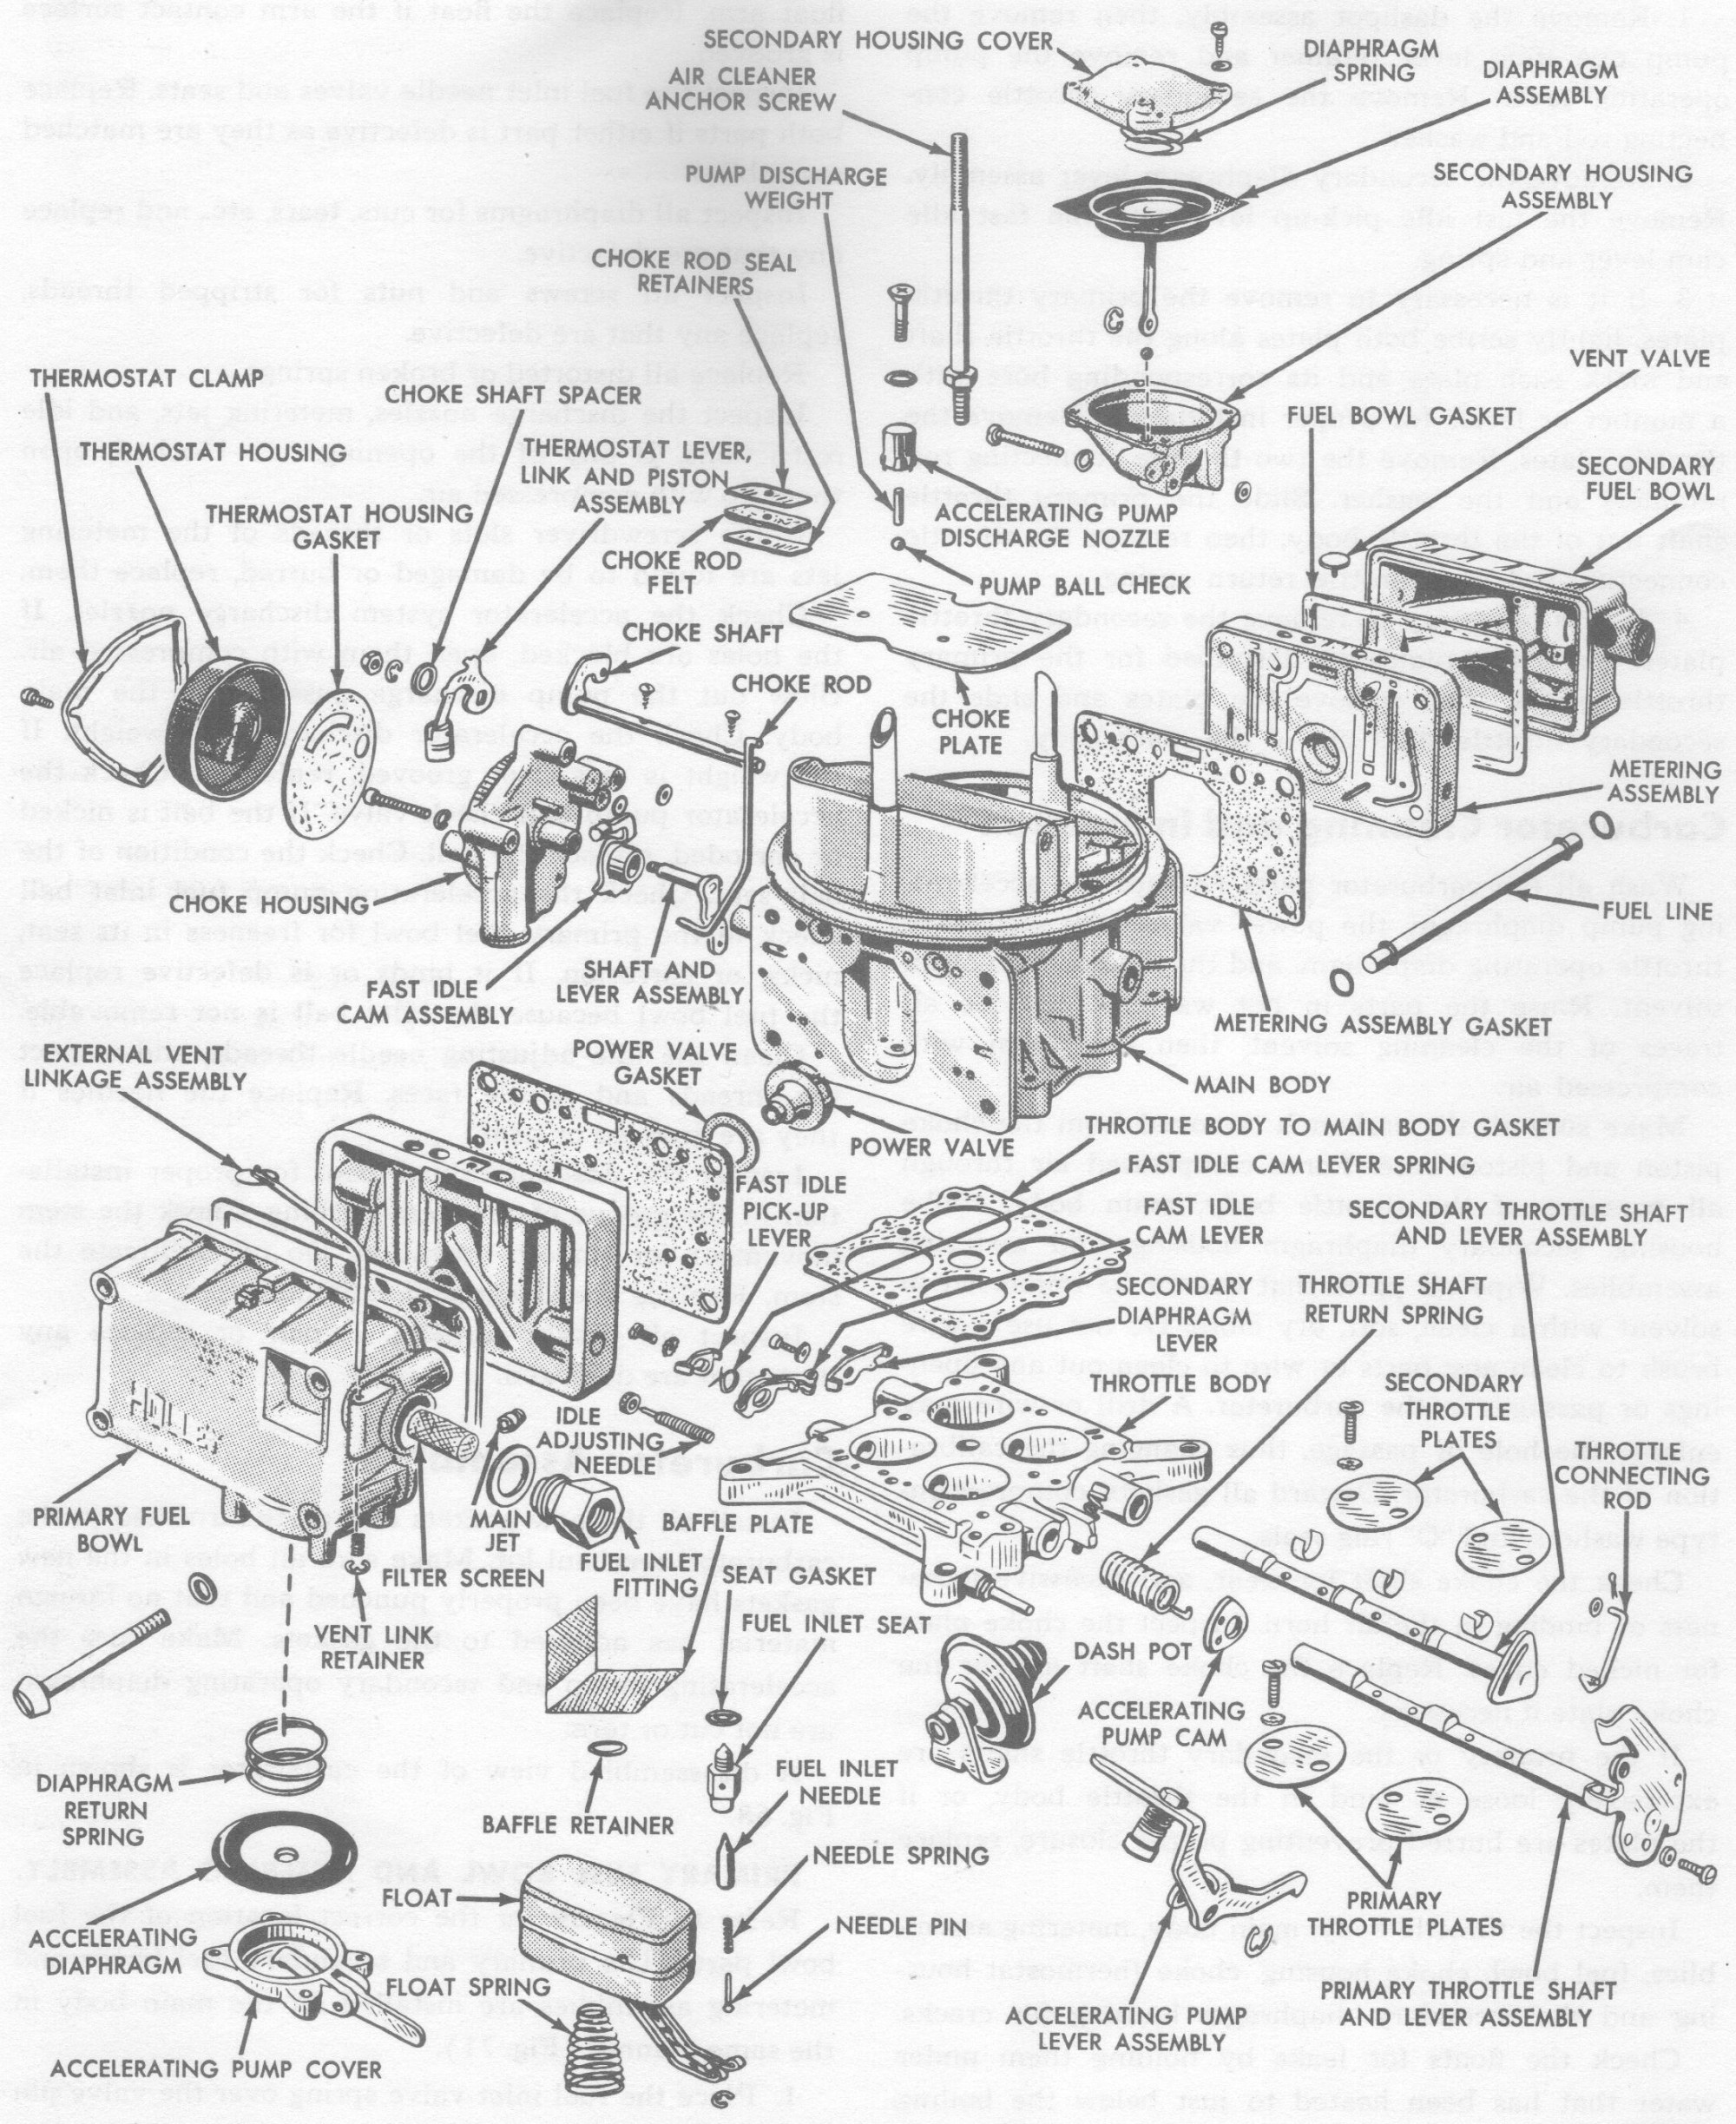 hight resolution of holley carb diagram wiring diagrams holley 4160 marine carb adjustment 2 2 7 holley four barrel